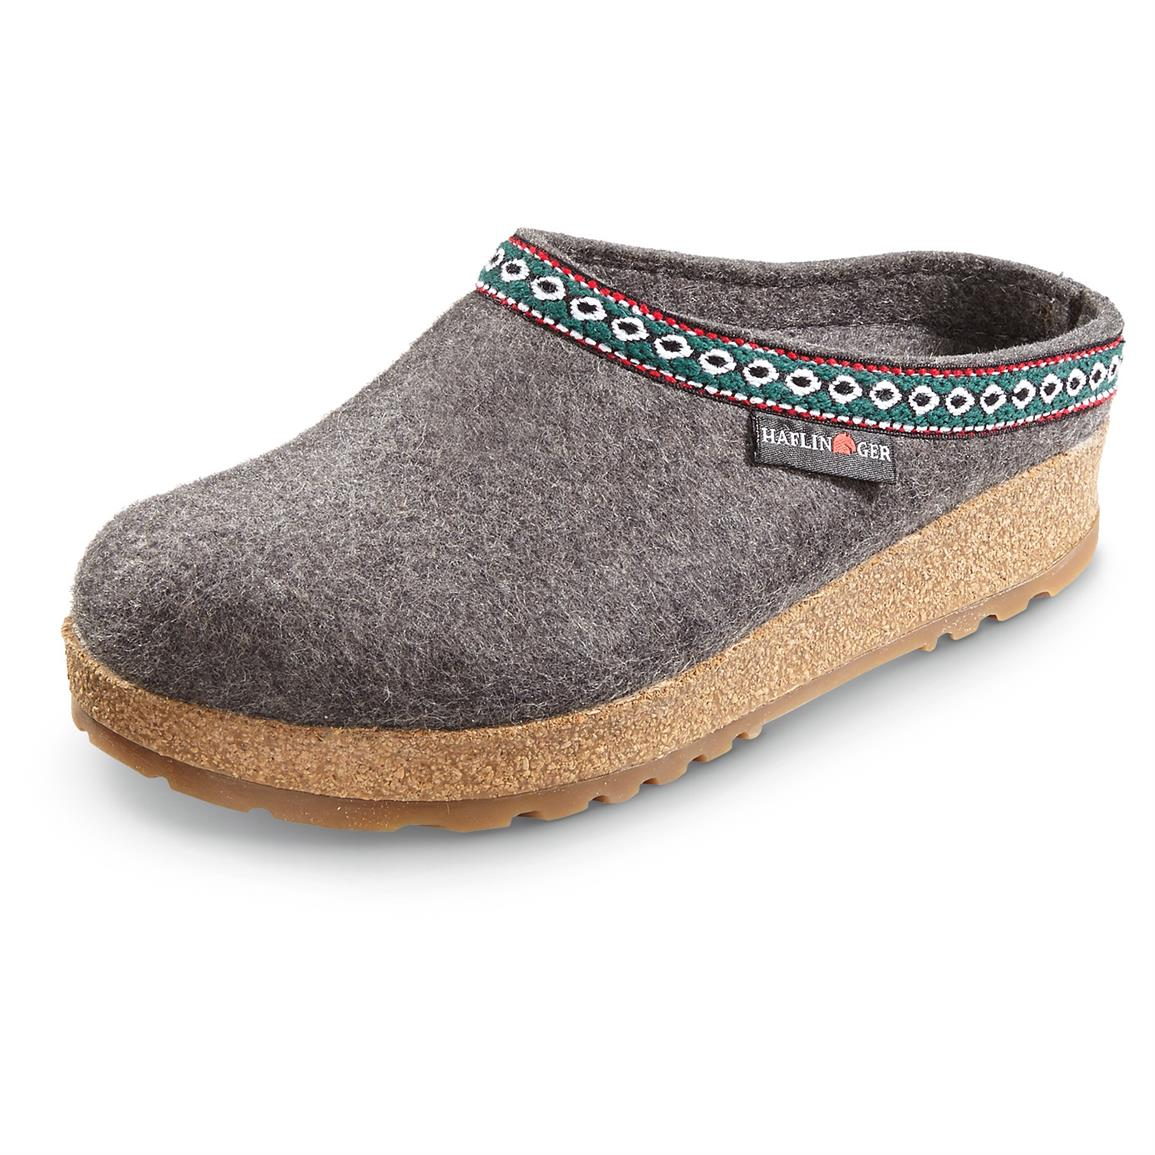 Men's and Women's Haflinger Classic Grizzly Clogs, Gray